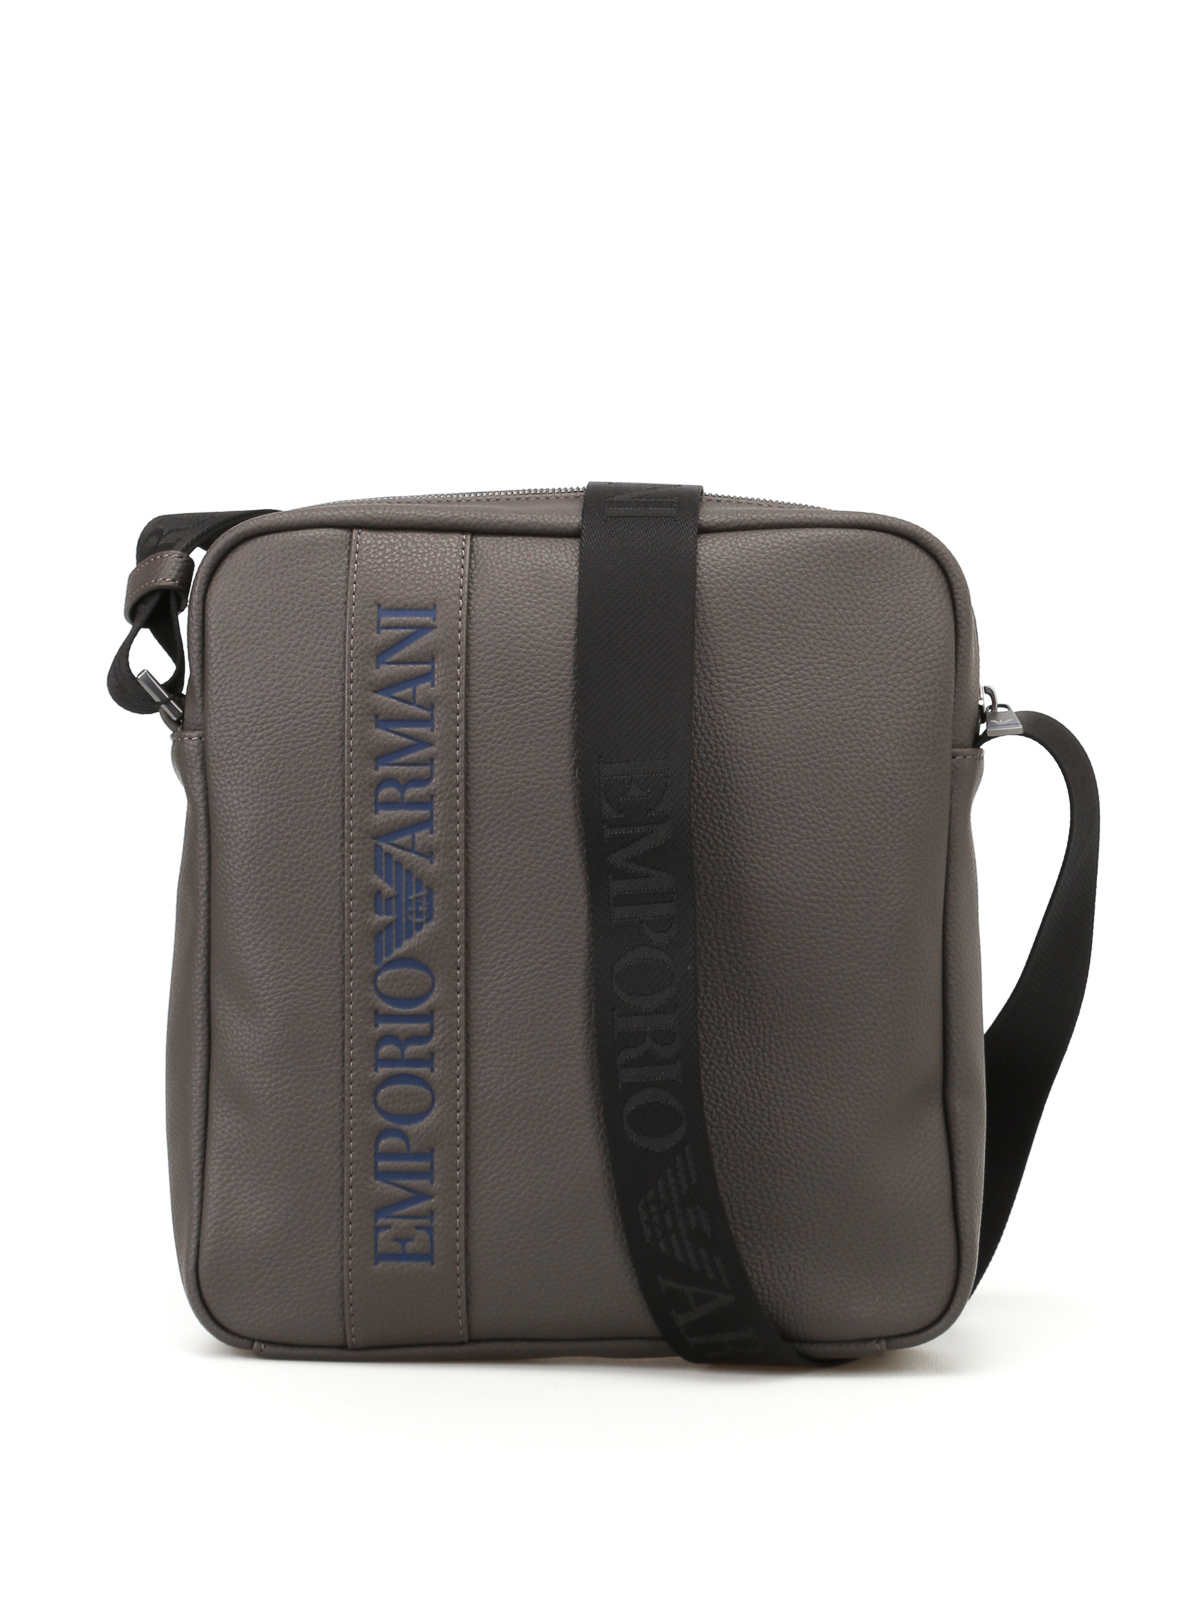 8b12684066 Emporio Armani - Embossed logo faux leather bag - cross body bags ...